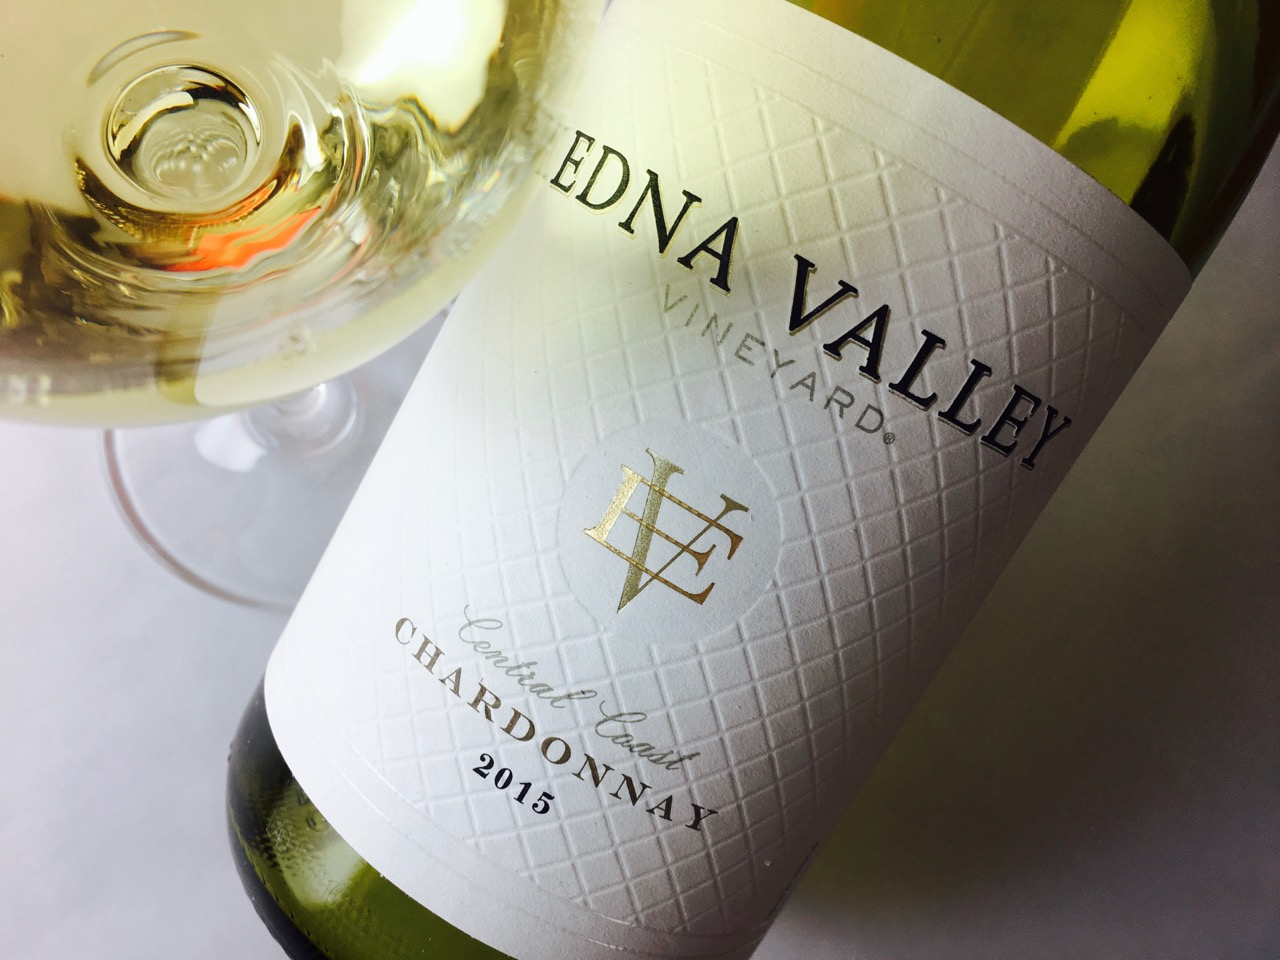 2015 Edna Valley Vineyard Chardonnay Central Coast